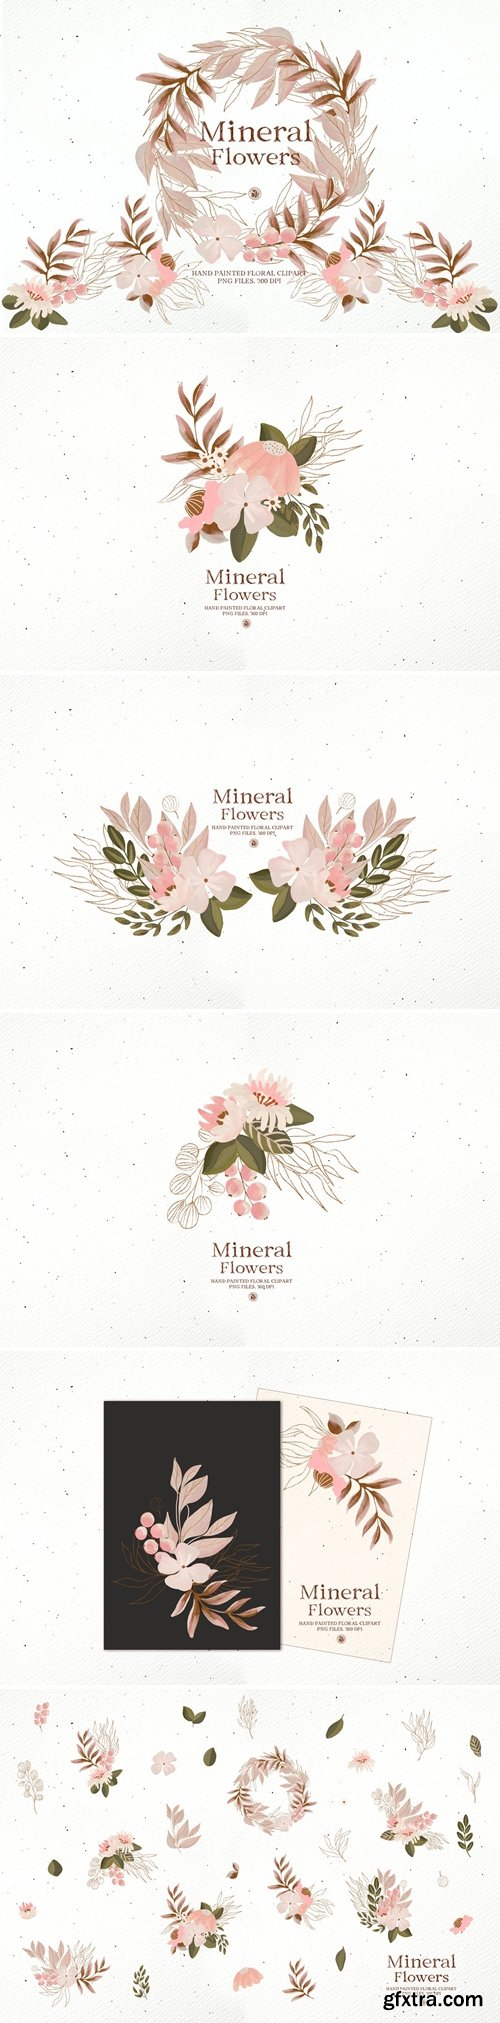 Mineral Flowers - hand painted floral clipart